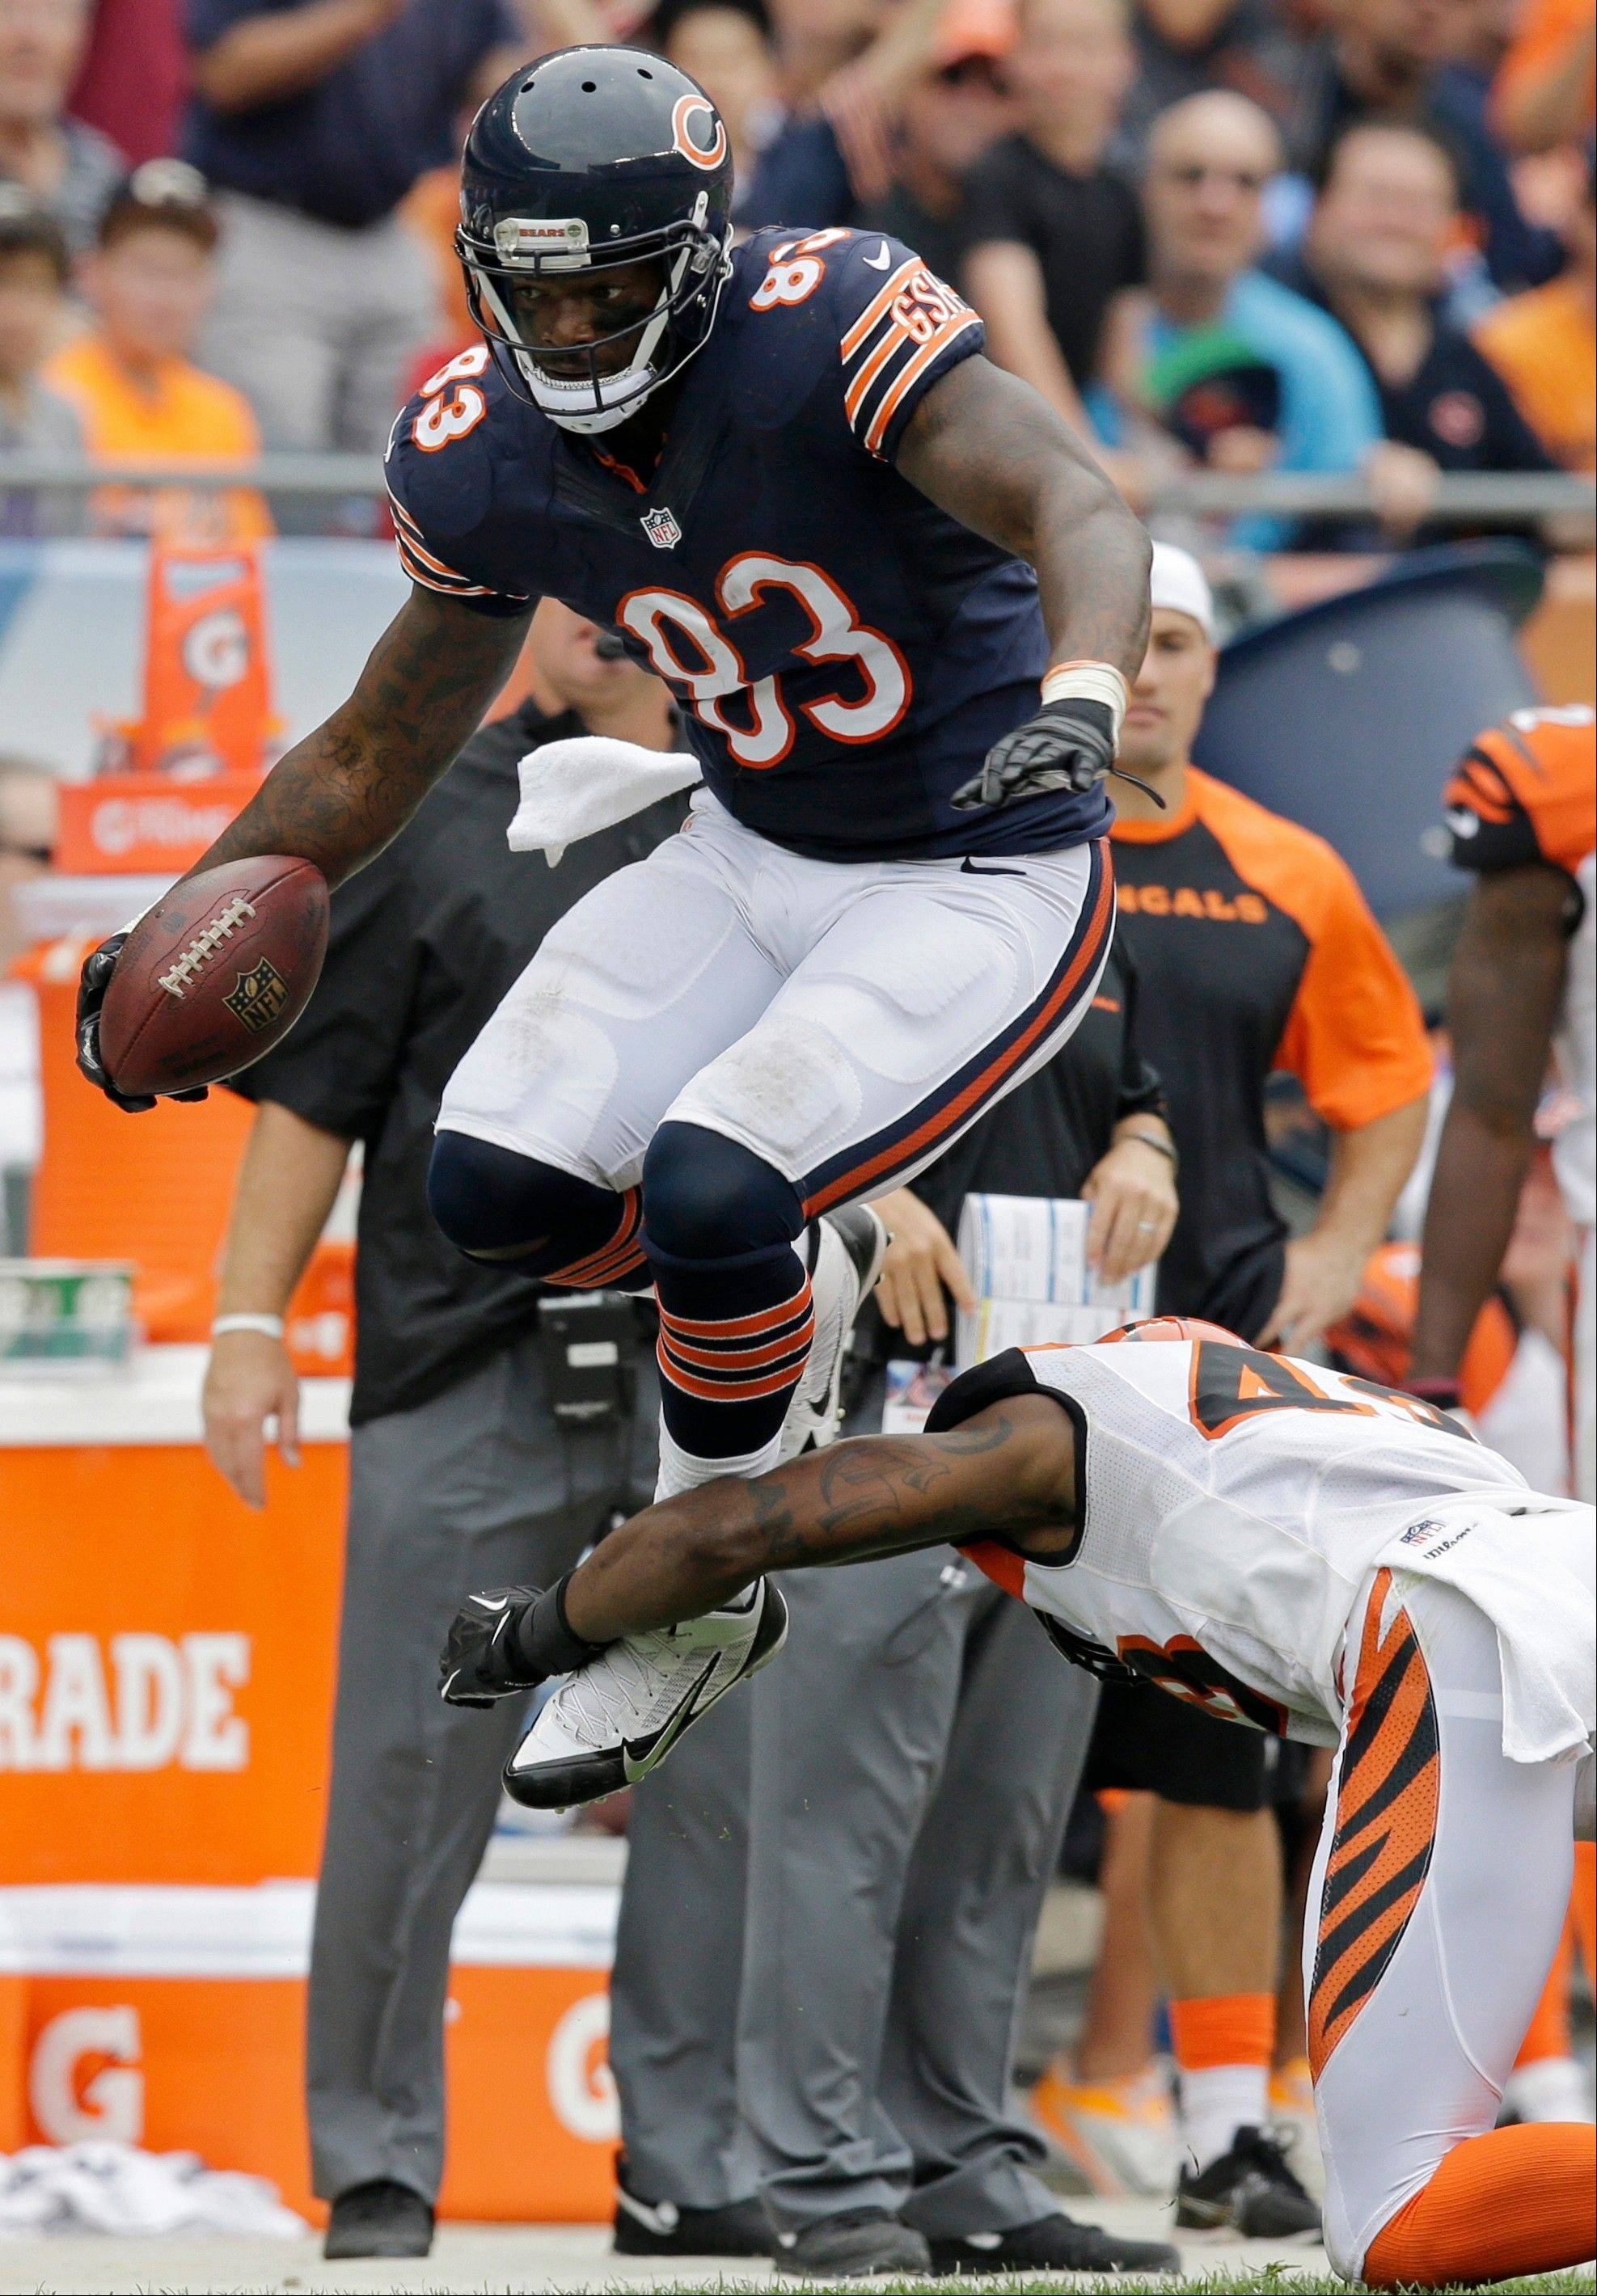 Chicago Bears tight end Martellus Bennett (83) leaps to avoid a tackle by Cincinnati Bengals safety George Iloka (43) during the second half of an NFL football game, Sunday.